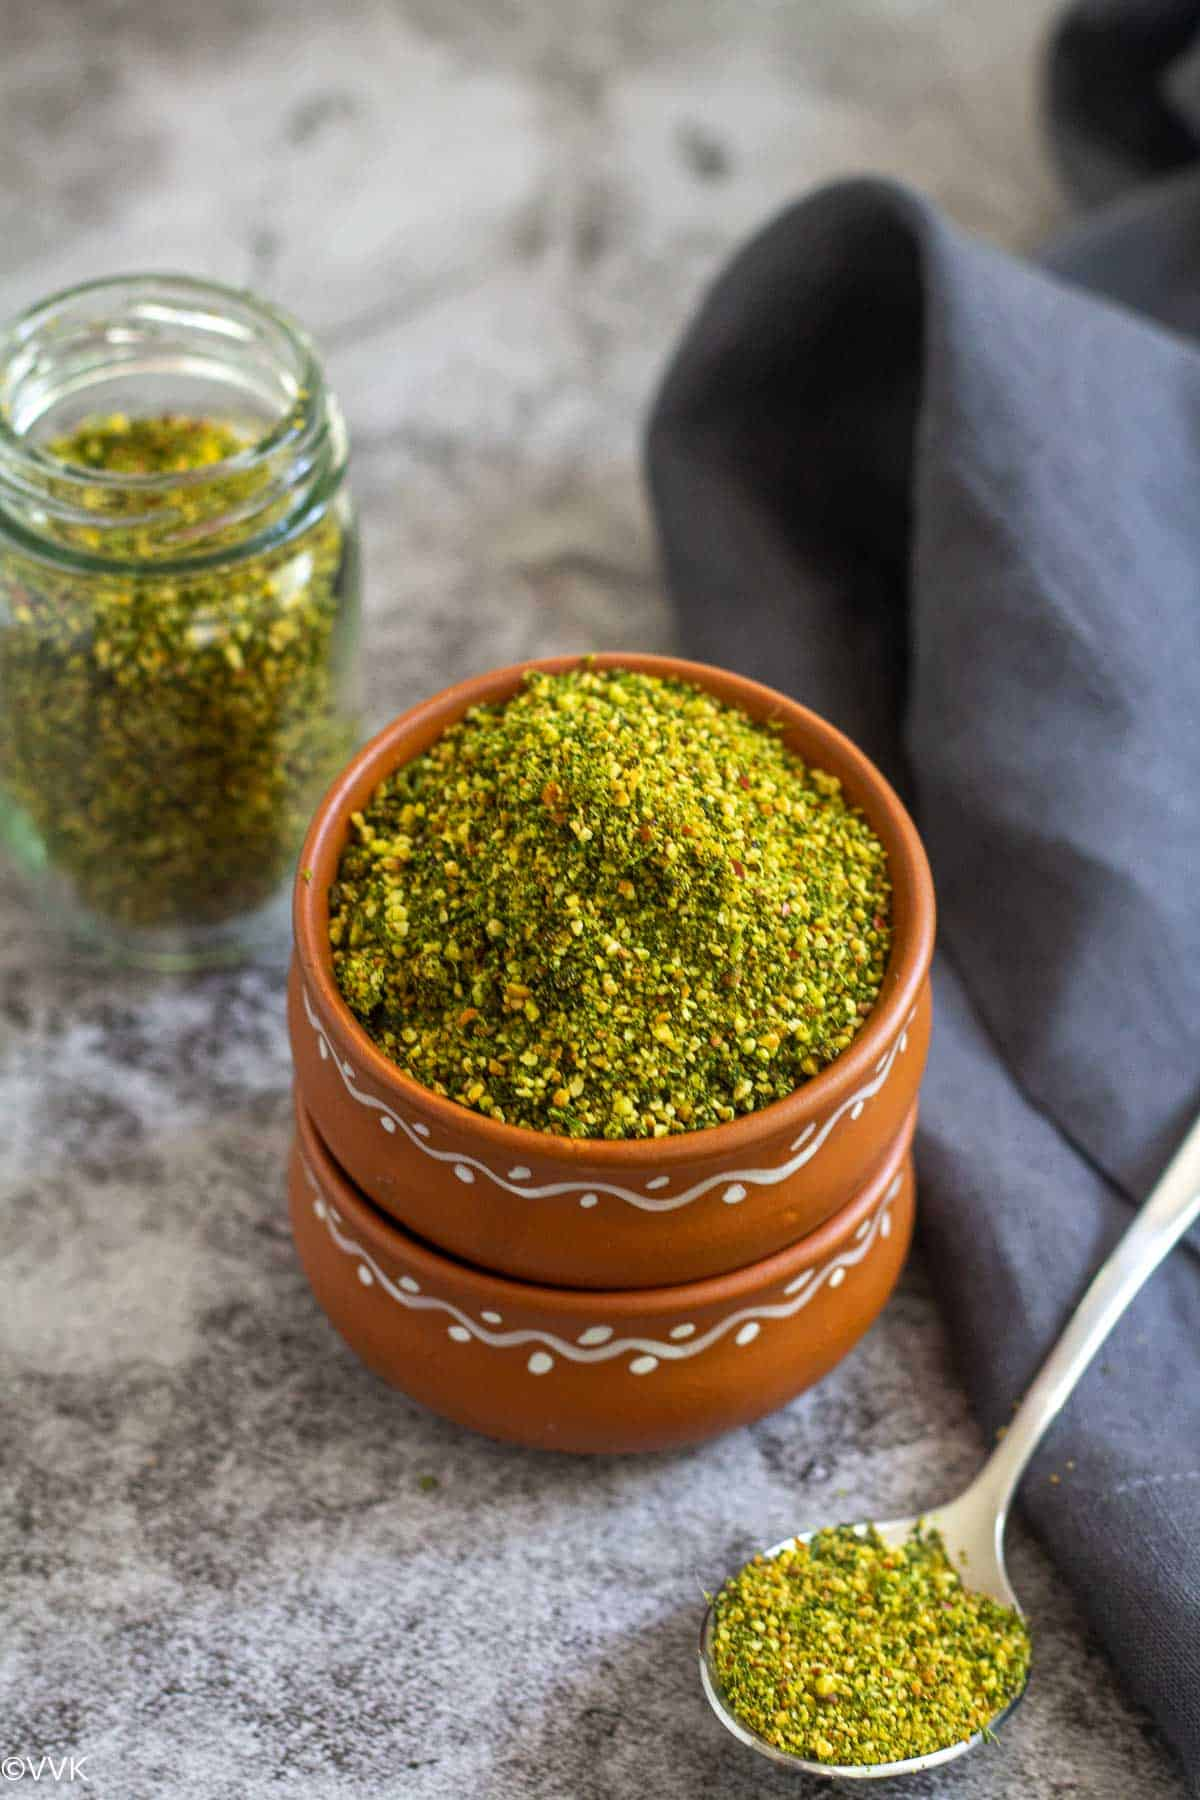 cilantro podi served in terracotta bowl and in a bottle on the side